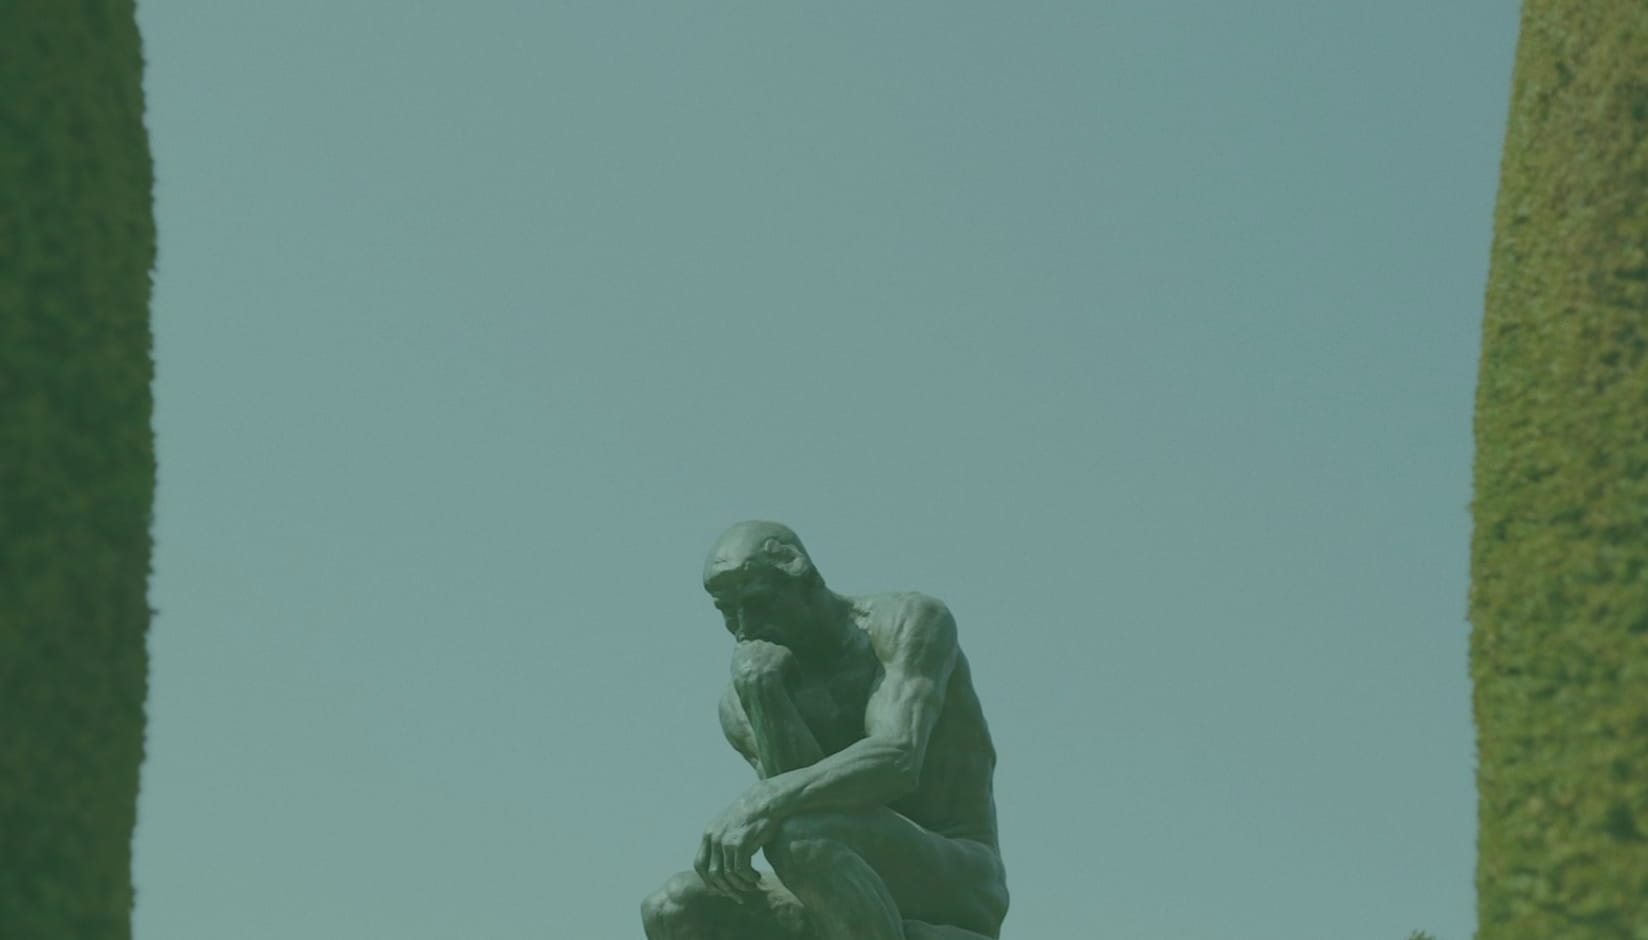 The Thinker monument